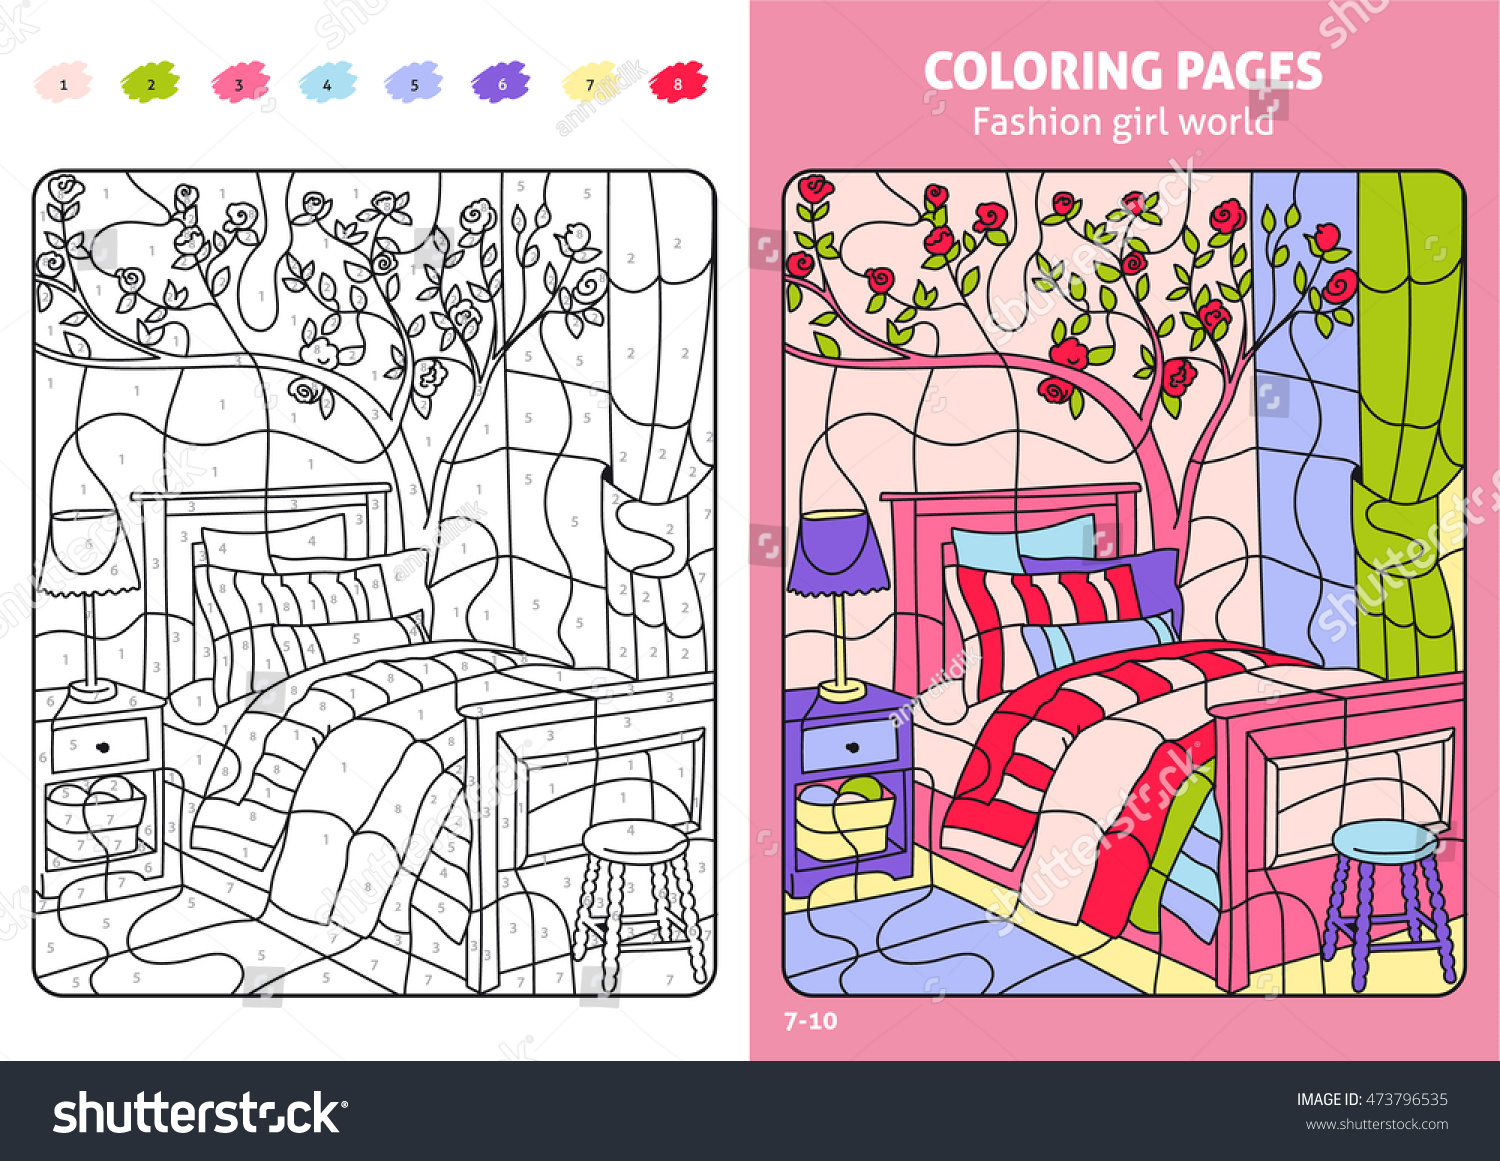 Fashion Girl World Coloring Pages Kids Stock Vector Royalty Free 473796535